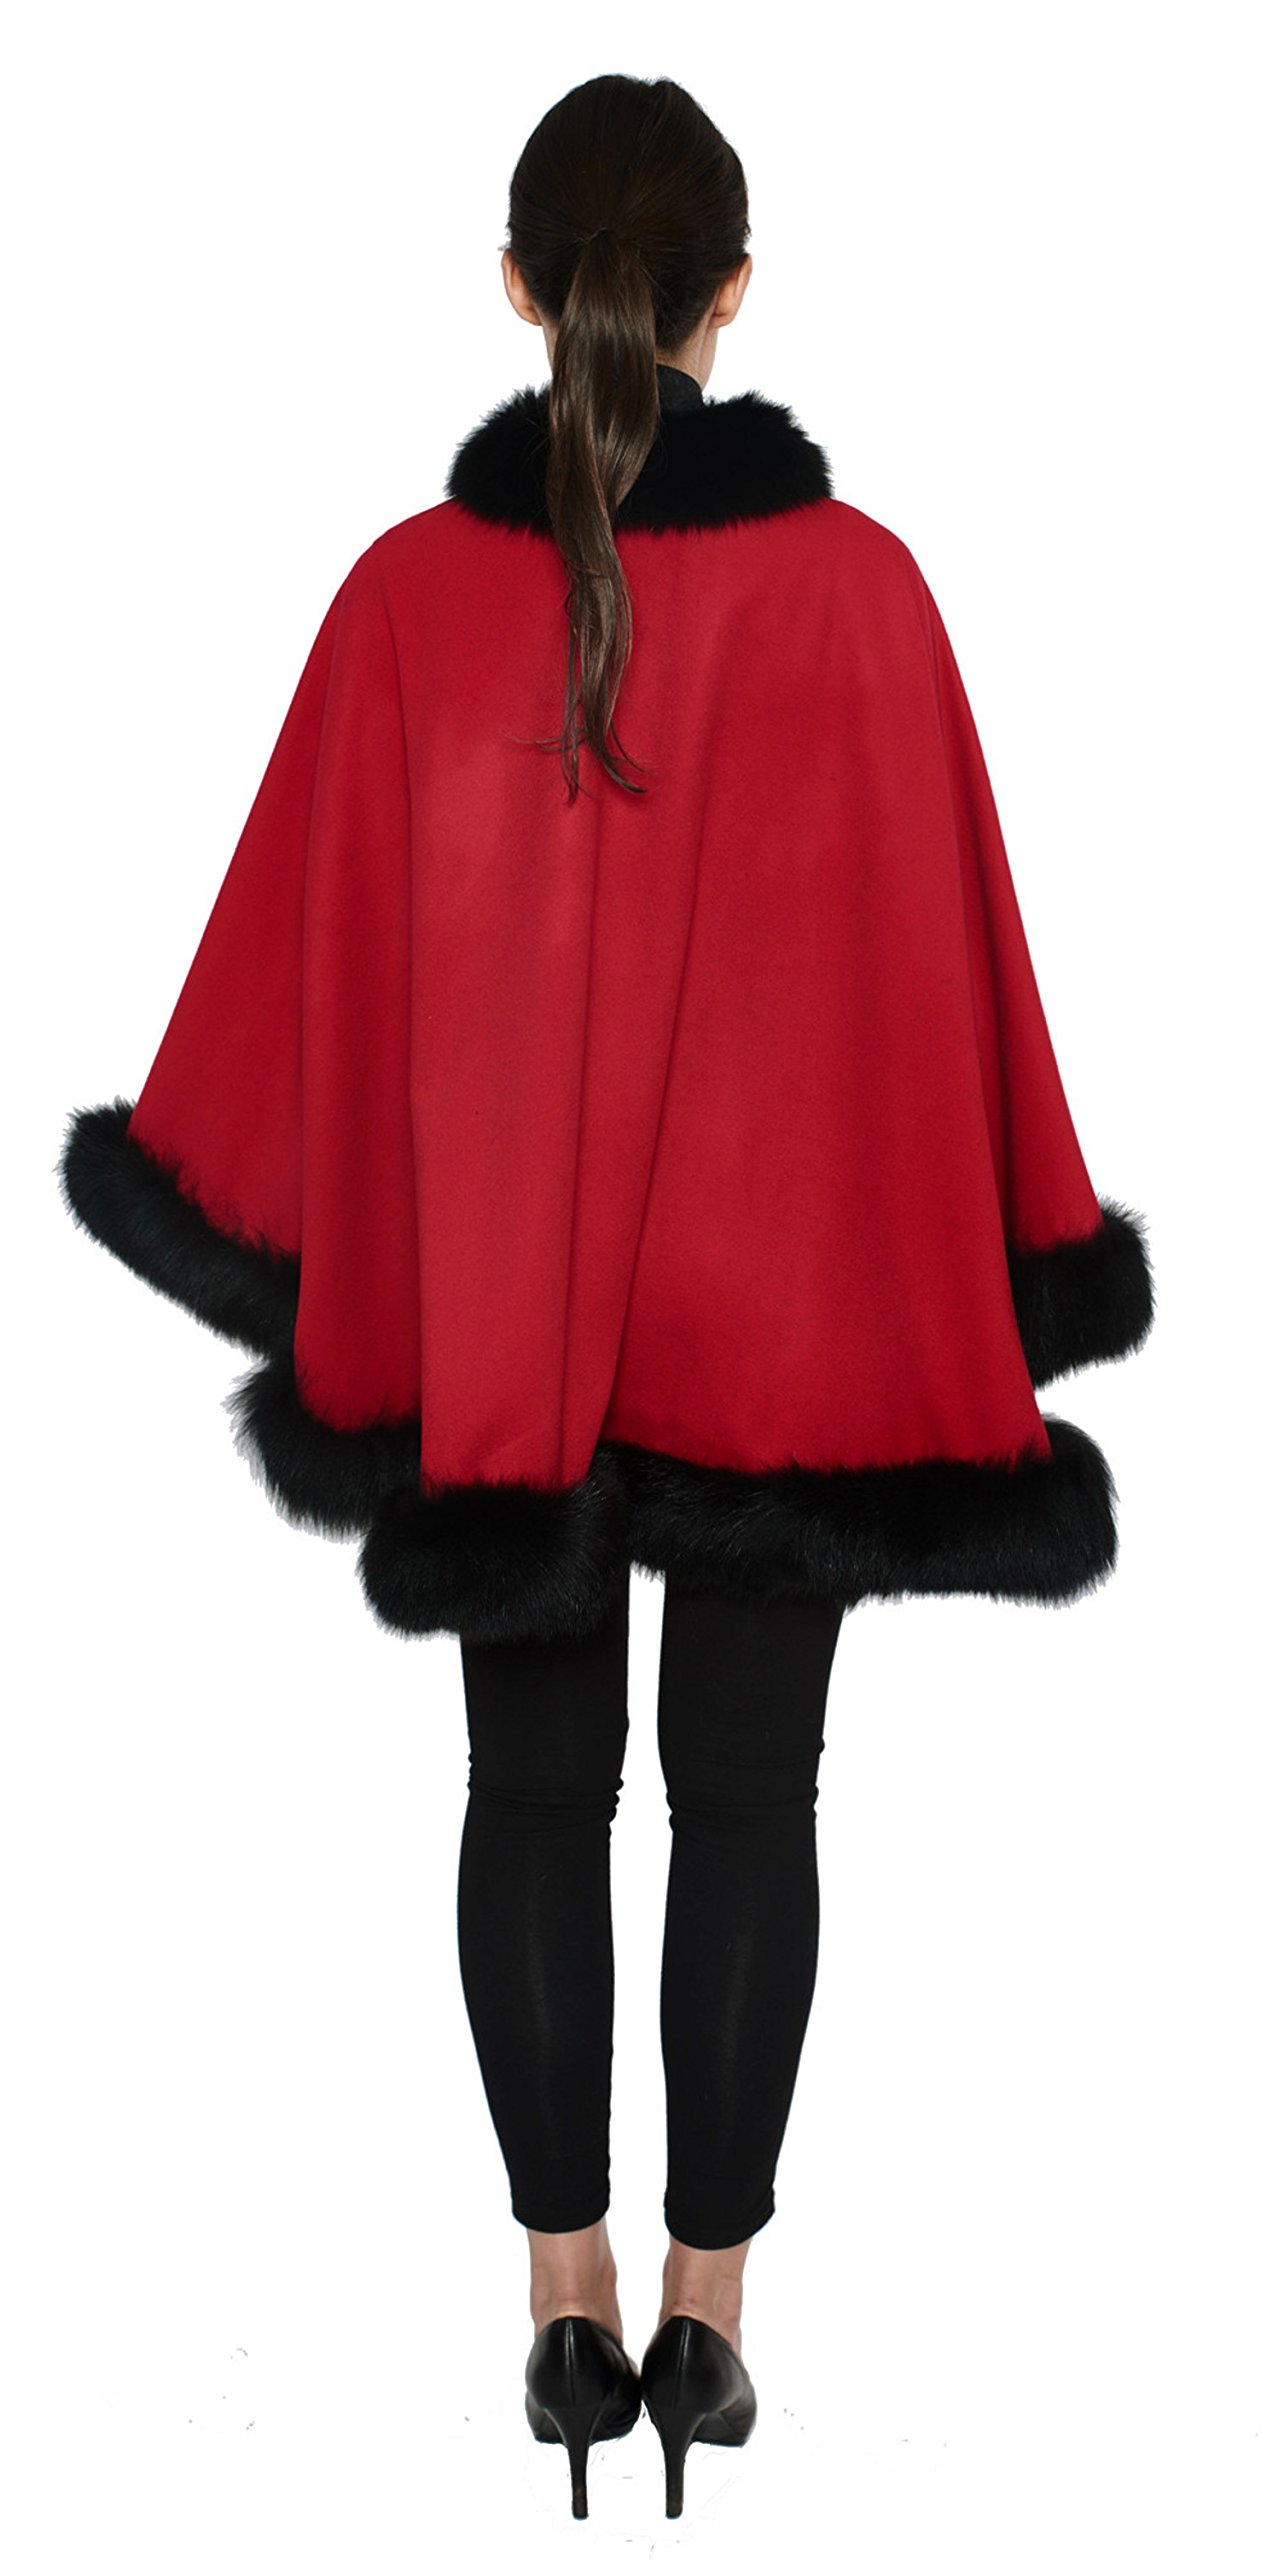 Cashmere Pashmina Group: Cashmere Cape with genuine Fox Fur Trim all around (Lipstick Red/ Black) by Cashmere Pashmina Group (Image #3)